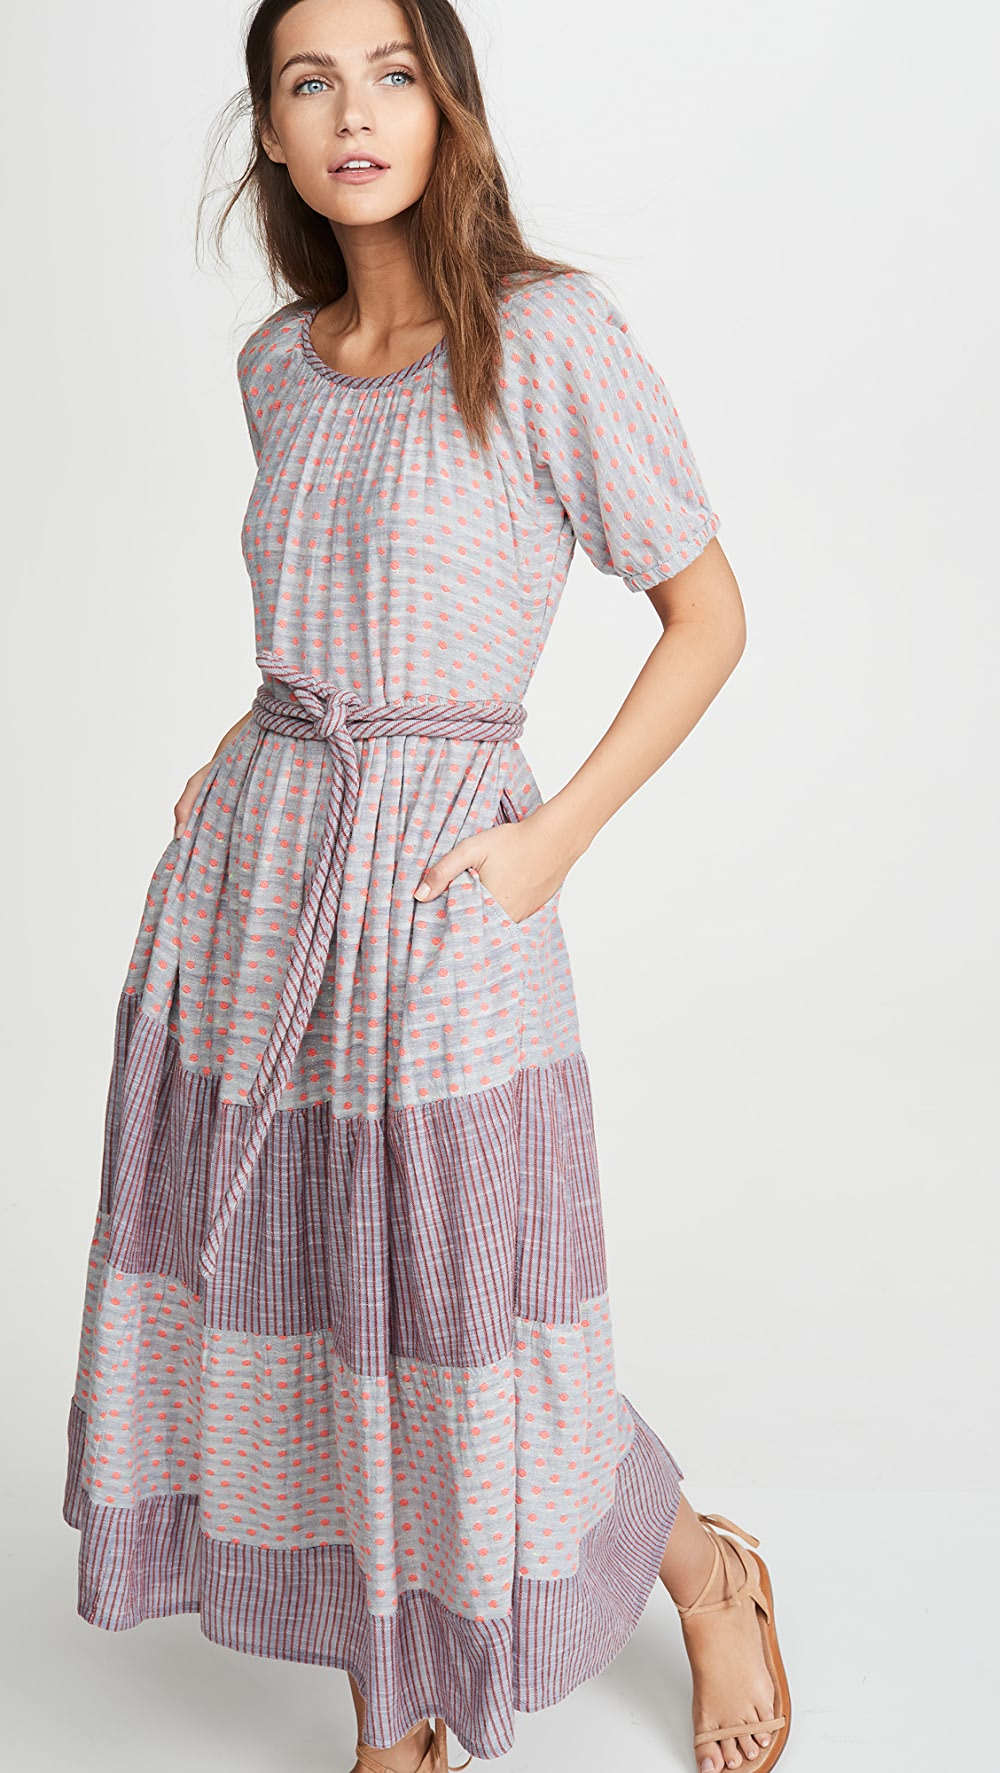 Gentle Ace&jig - Noah Dress Commodities Are Available Without Restriction